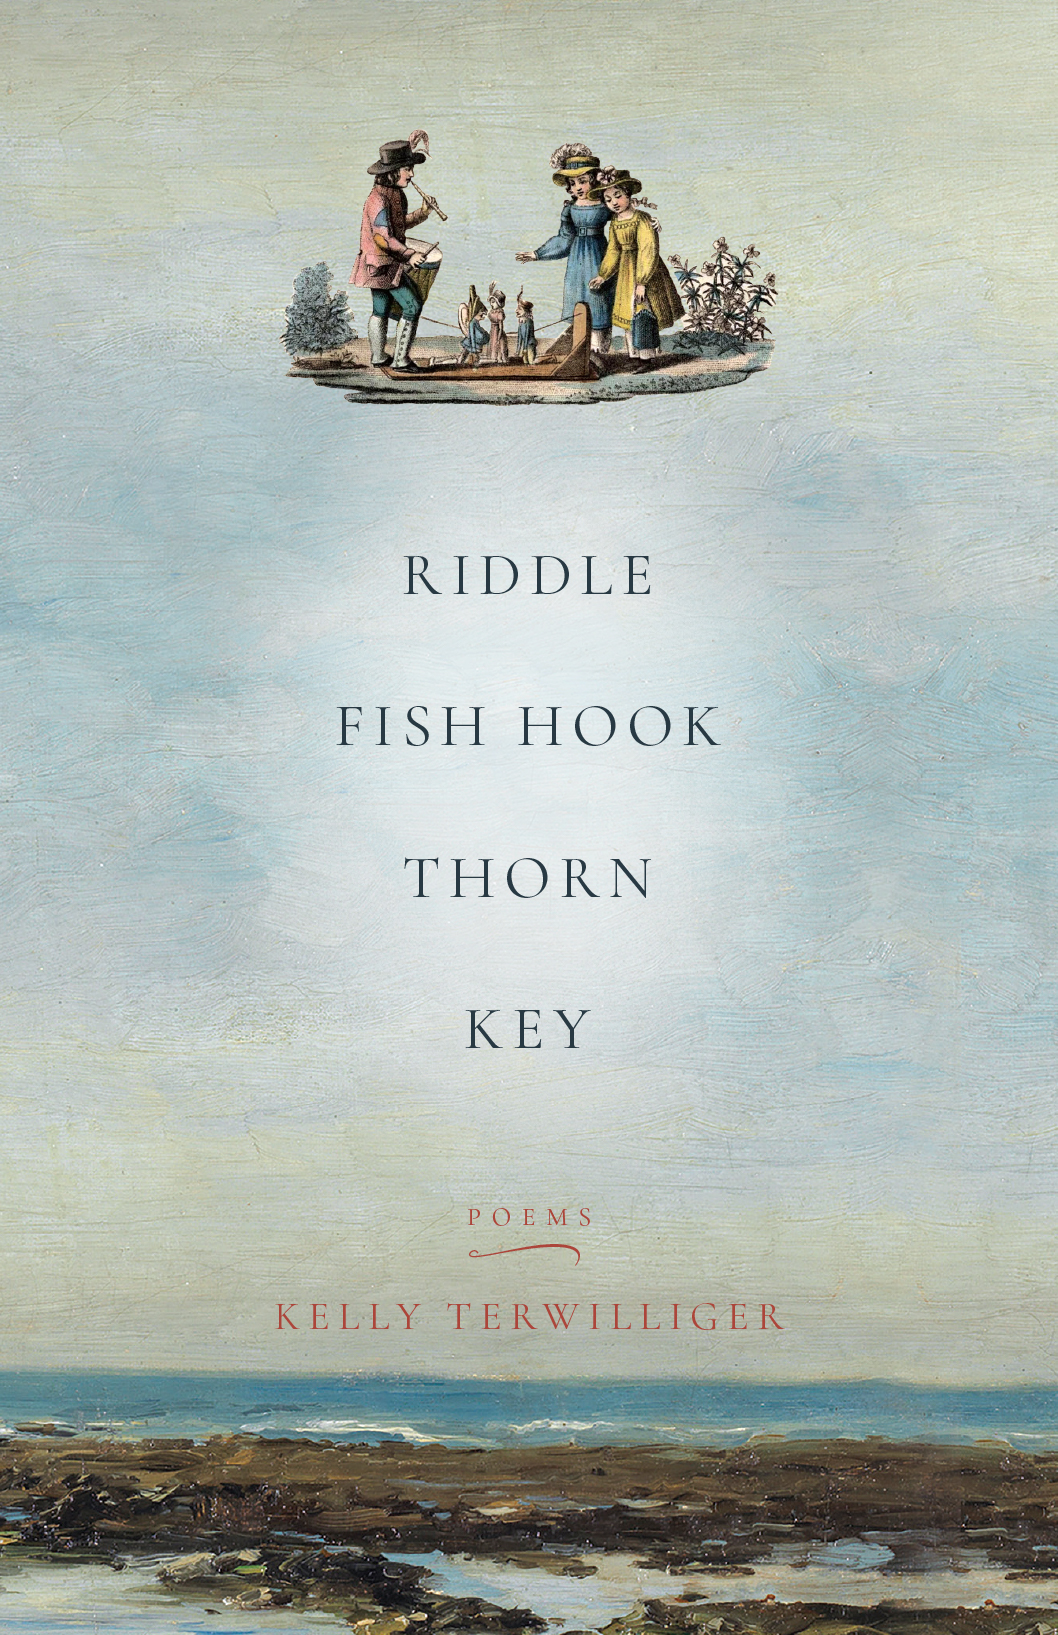 Riddle, Fish hook, Thorn, Key